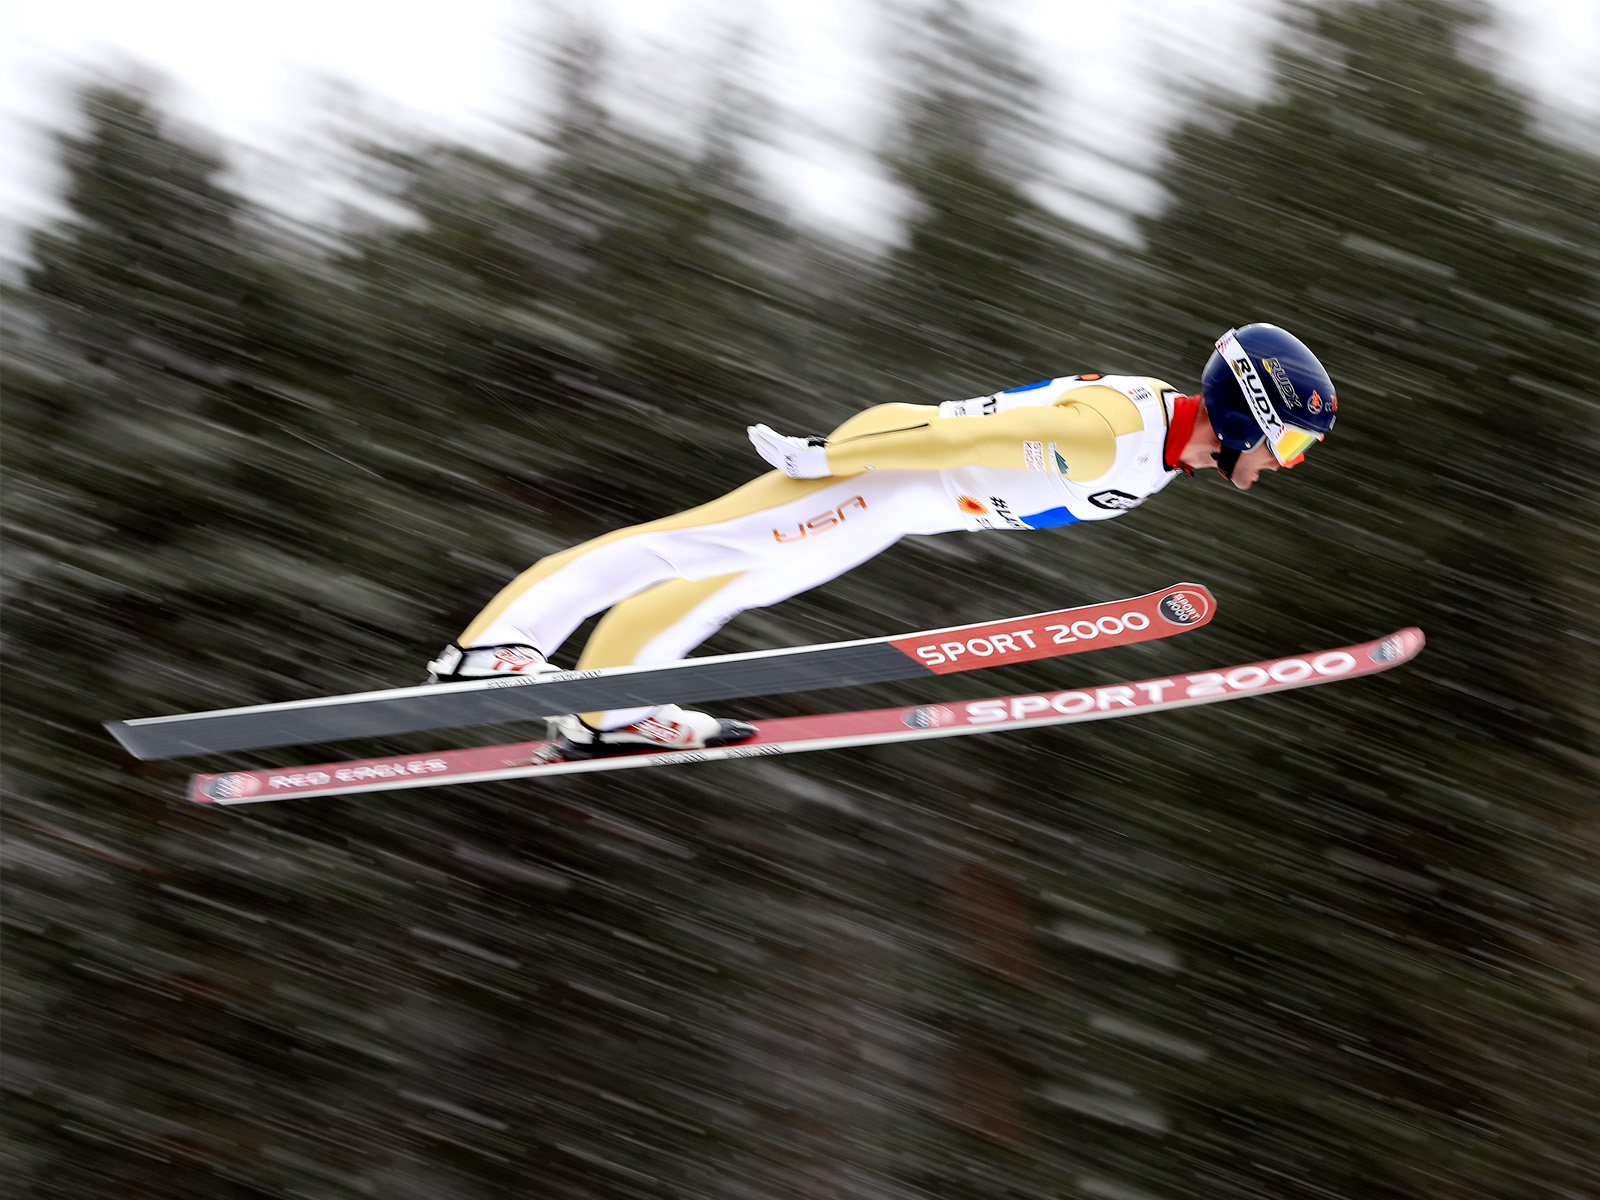 About Nordic Combined